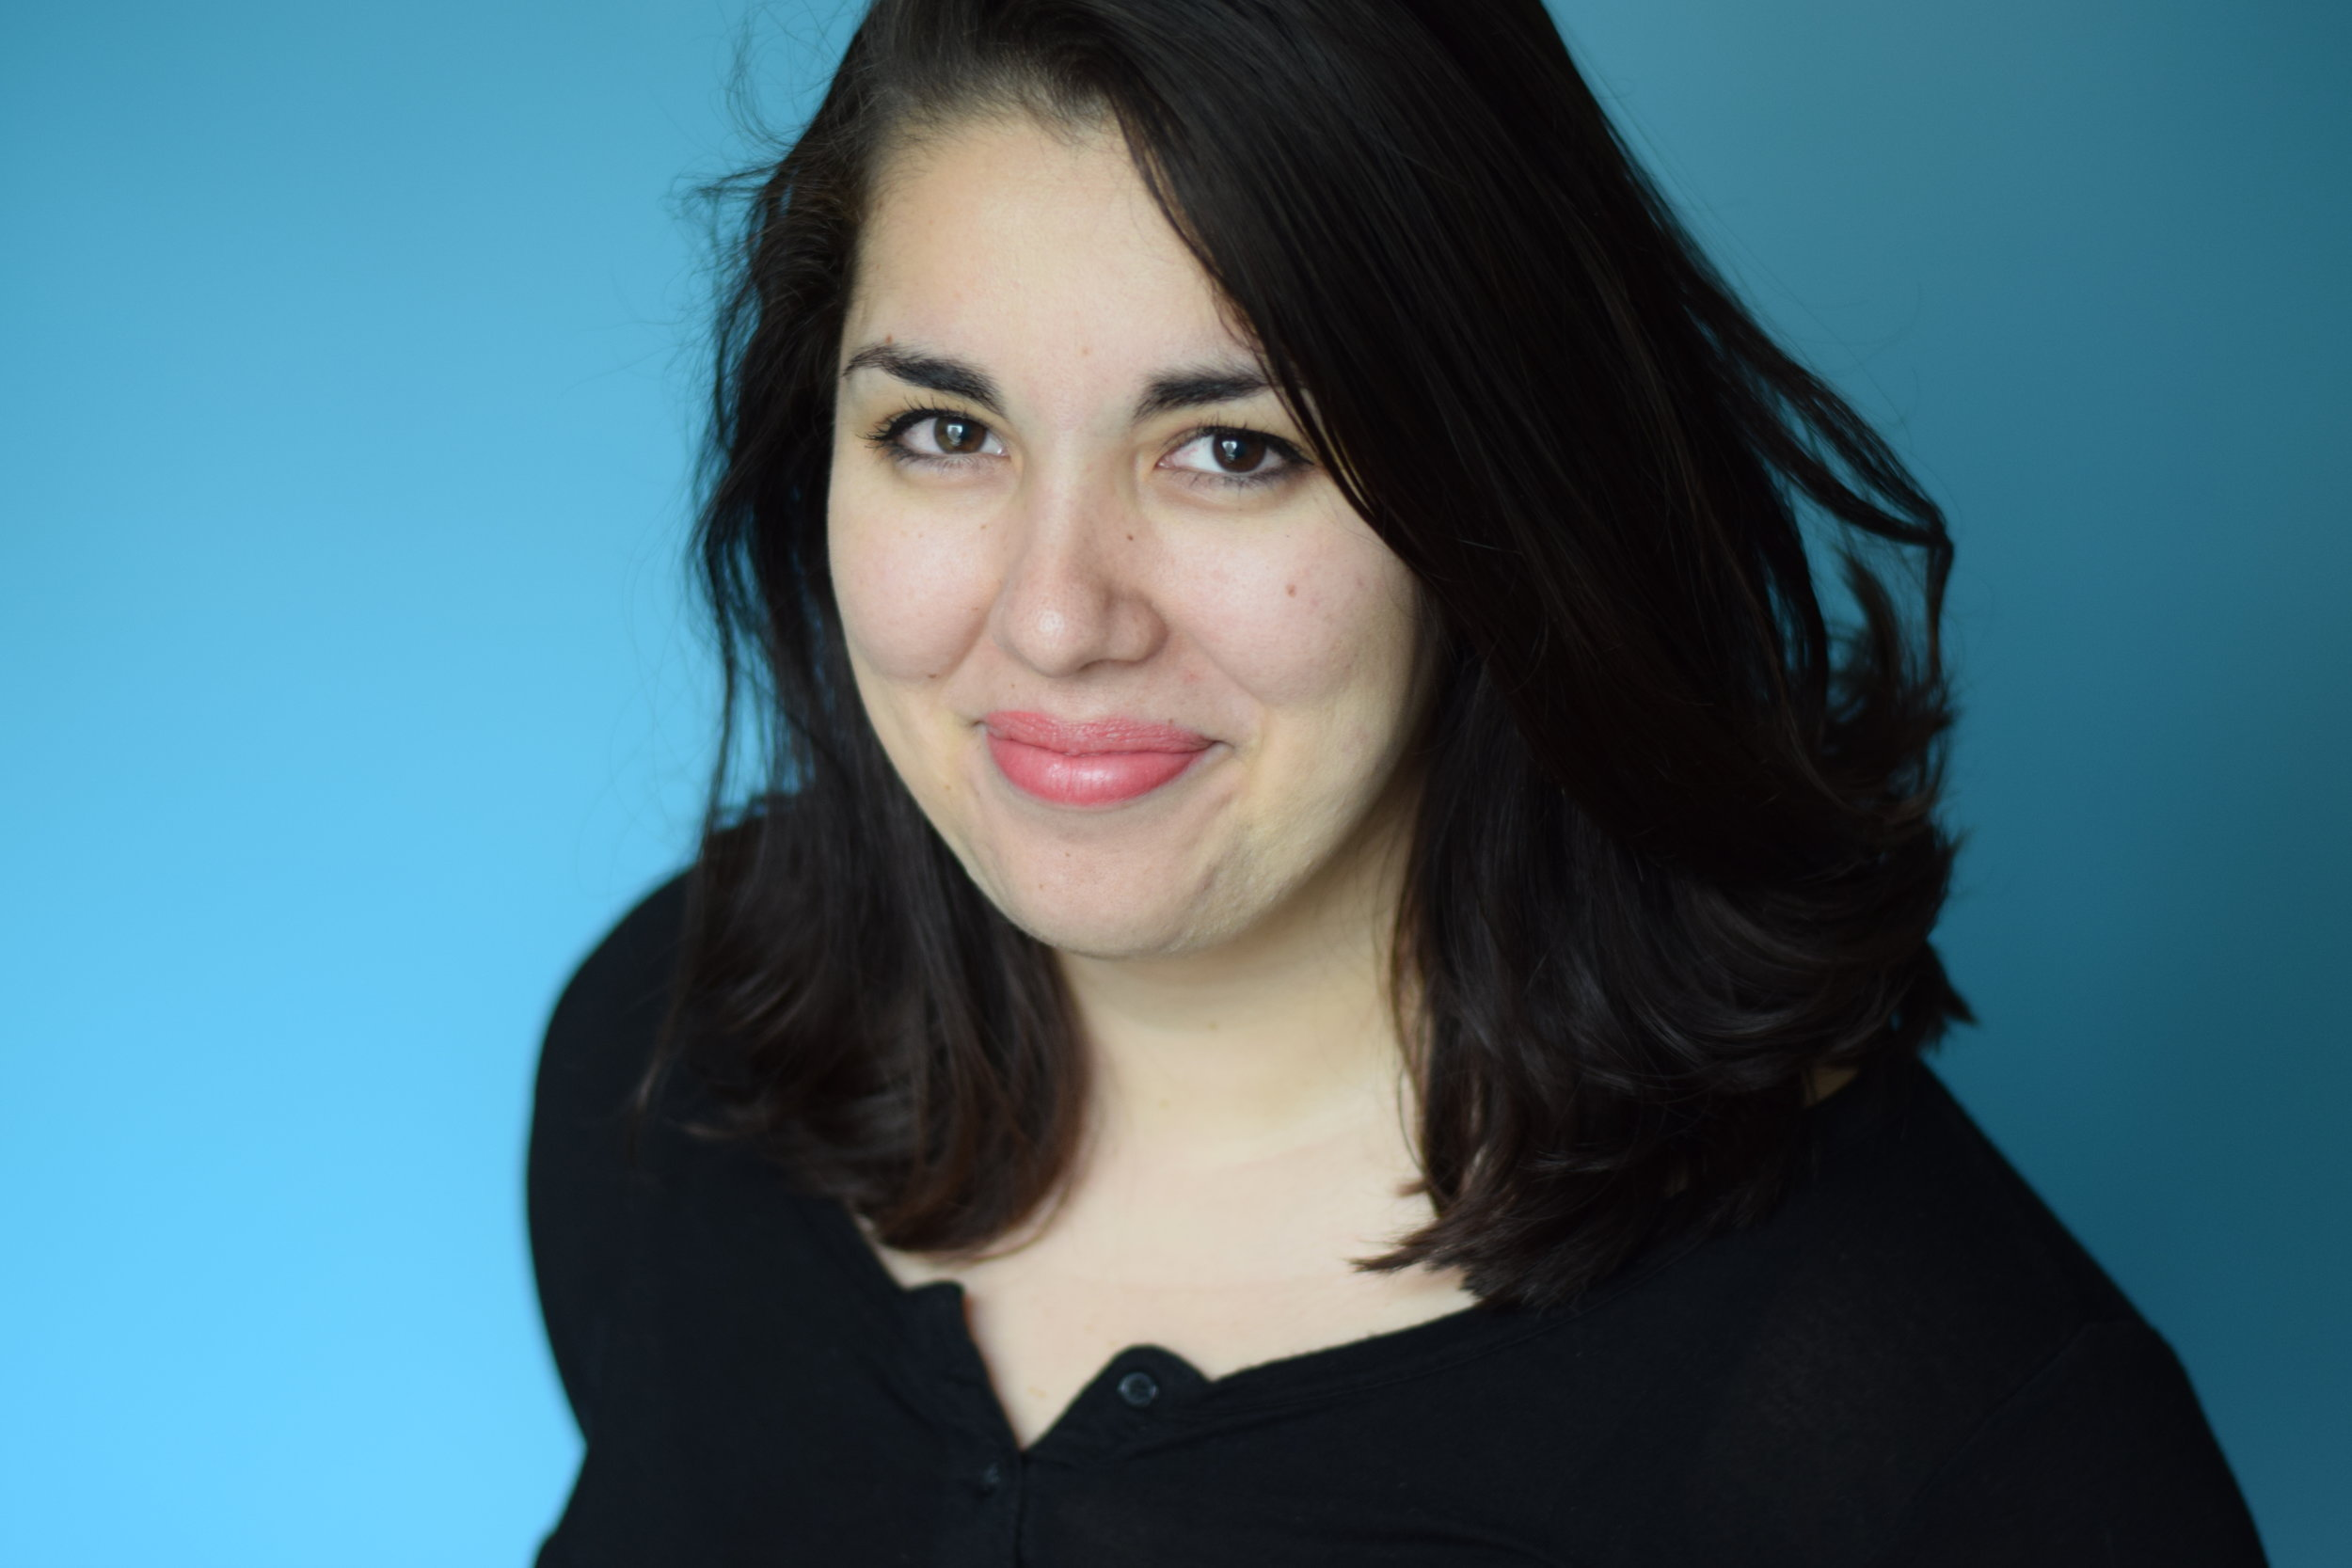 Ana Bretón - is currently a twice-Emmy nominated digital producer for Full Frontal with Samantha Bee.In her time at Full Frontal, she has directed and produced hundreds of short-form comedic videos. She has also co-produced several field pieces for the show, focusing on subjects like asylum seekers at the U.S./Mexico border, immigrants in the military, and feminist rescue brigades in Mexico.In her most ambitious directing role, Ana directed the TV pilot for the docu-series RUN, where a team of expert women transform the political campaign of an up-and-coming woman running for office. Like Queer Eye, but for politics. Ana prioritized hiring a diverse crew of women and people of color, of all sexual orientations. She's currently shopping the pilot to various networks.Ana has over a decade of working in film production, focusing on comedy series and documentaries. She's a skilled director, producer, editor and cinematographer (including drones!) She was a camera operator & researcher for the feature-length documentary, In Football We Trust, which premiered at the Sundance Film Festival in 2015 and won a regional Emmy in 2017.She's proud to be one of the few Latinxs to have been nominated for an Emmy in 2017 and 2018.She was born in Mexico City and currently lives in NYC. Si, hablo Español.